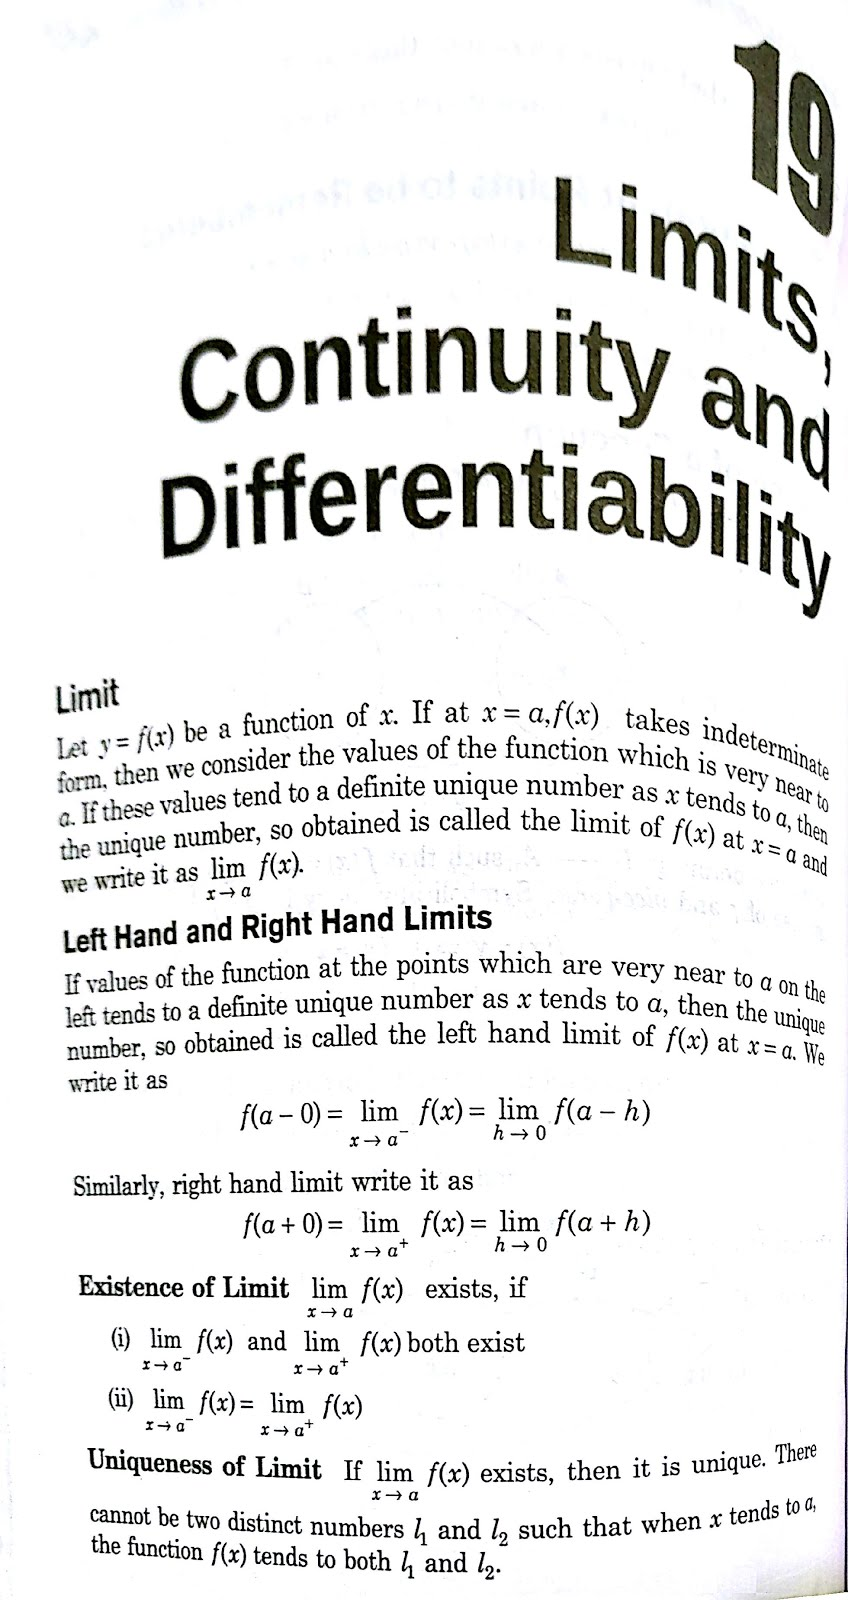 Pdf solutions 12 ncert class and continuity differentiability